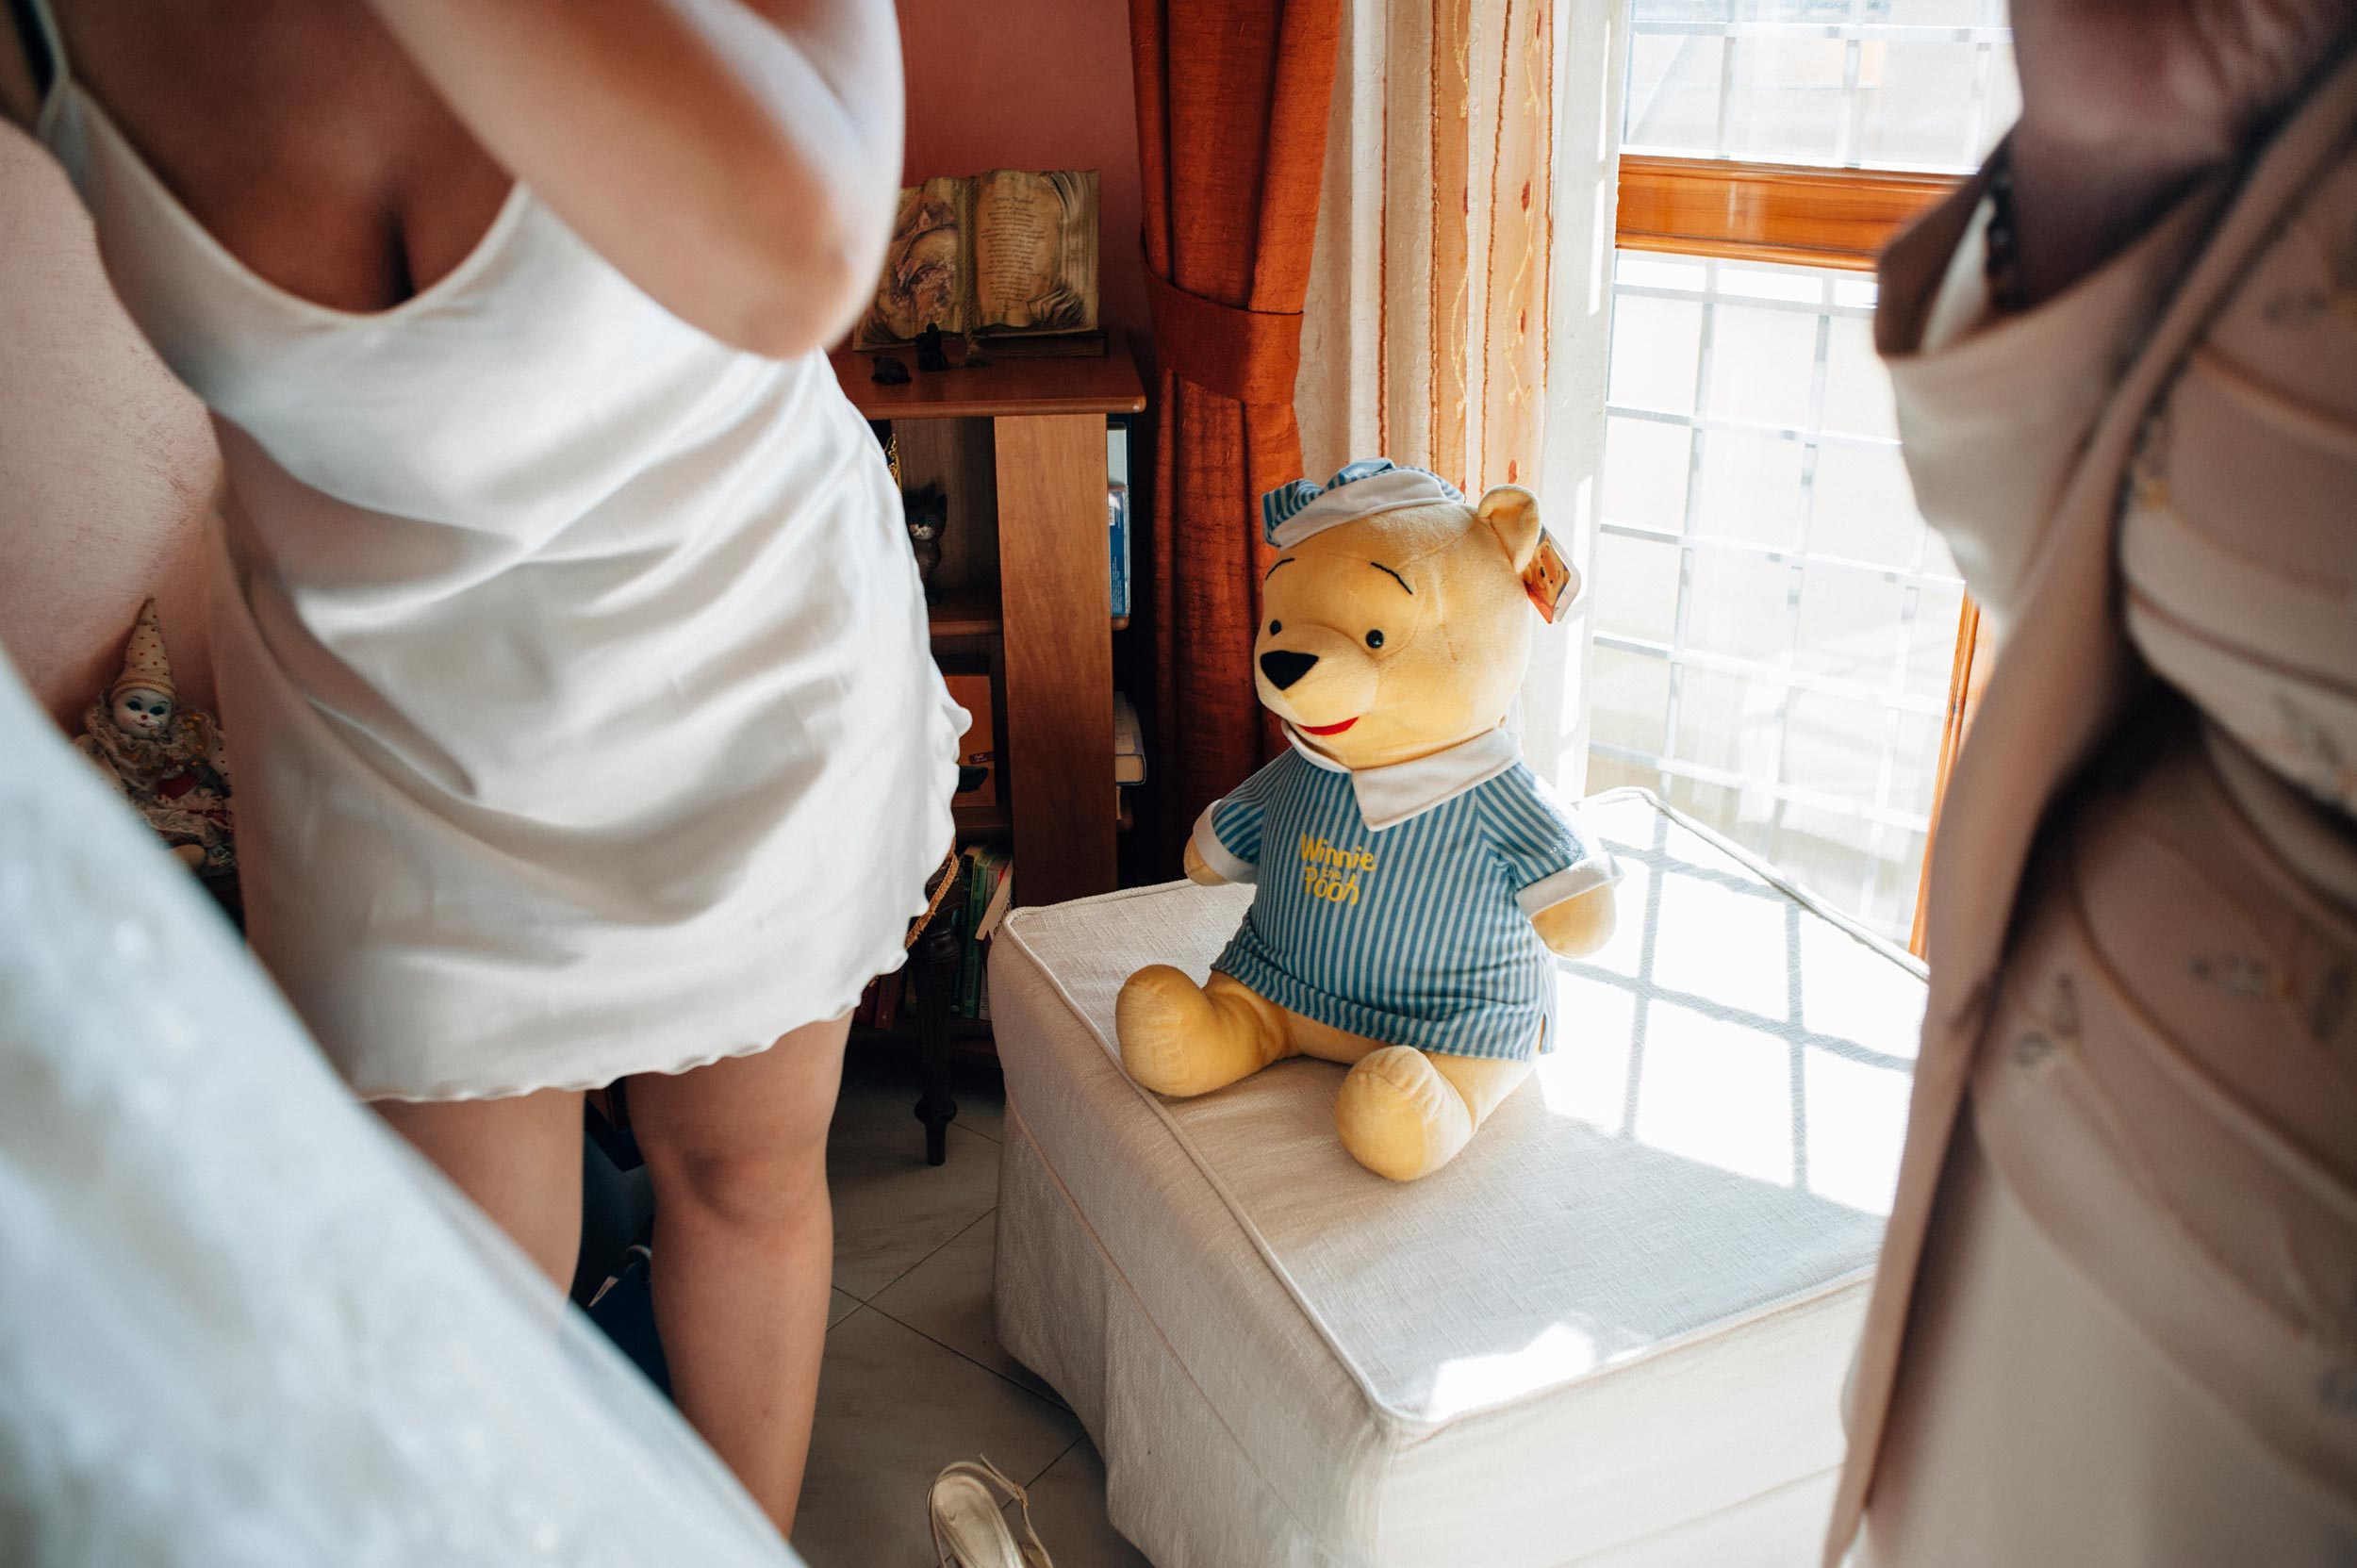 astonished-winnie-the-pooh-looks-at-the-bride-getting-ready-in-underwear.jpg